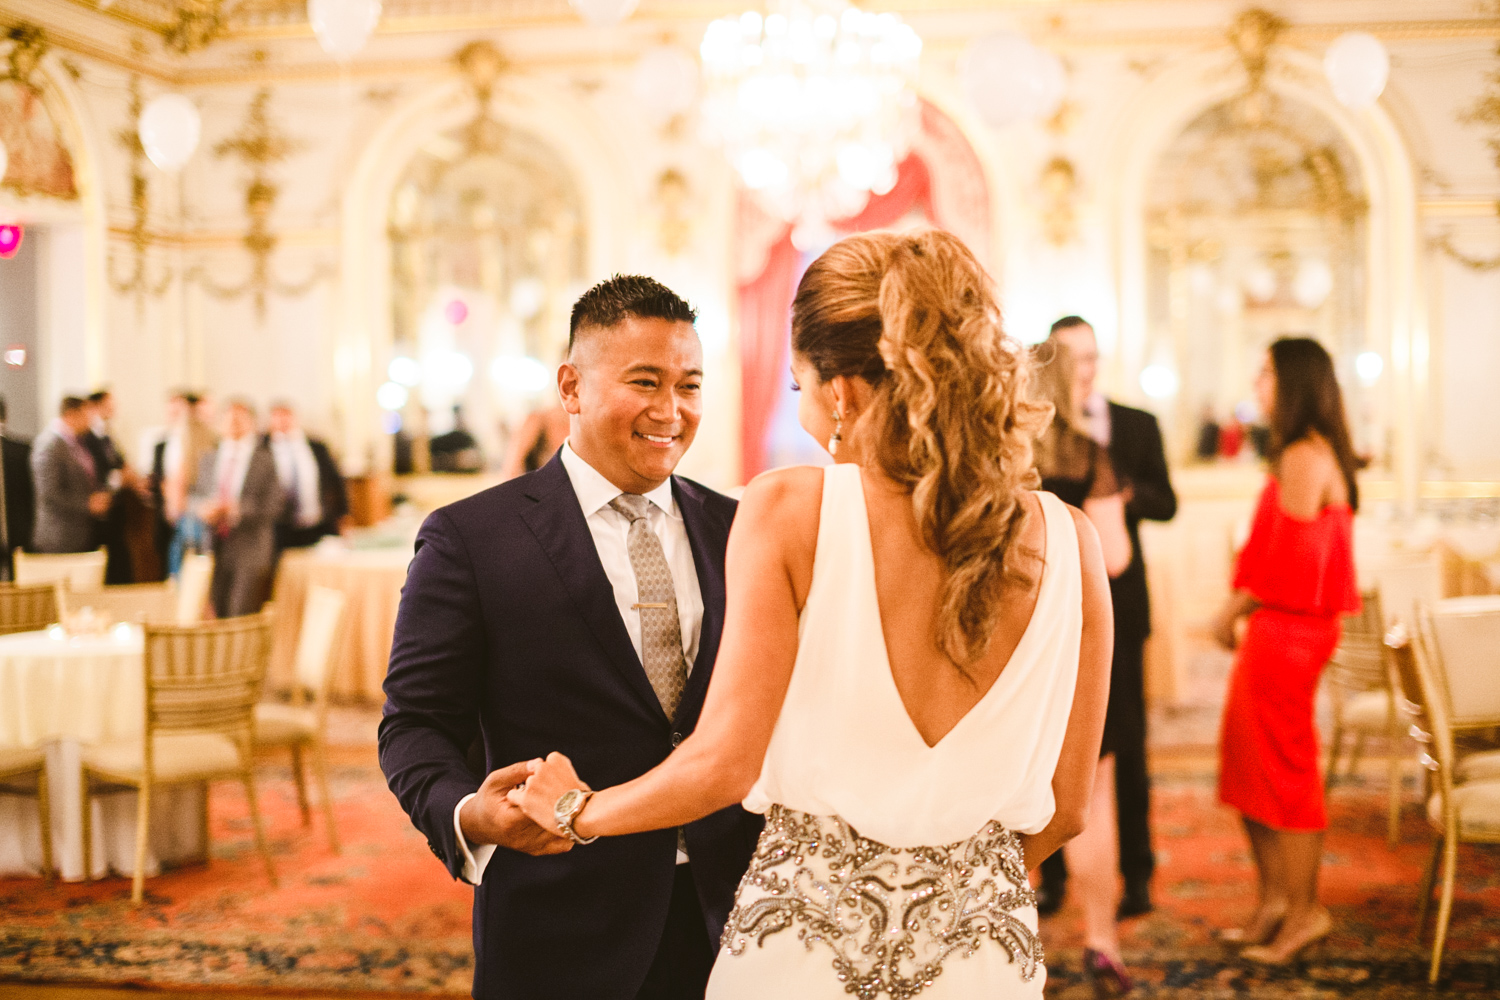 009 bride to be and groom to be share a dance at their engagement party in washington dc.jpg